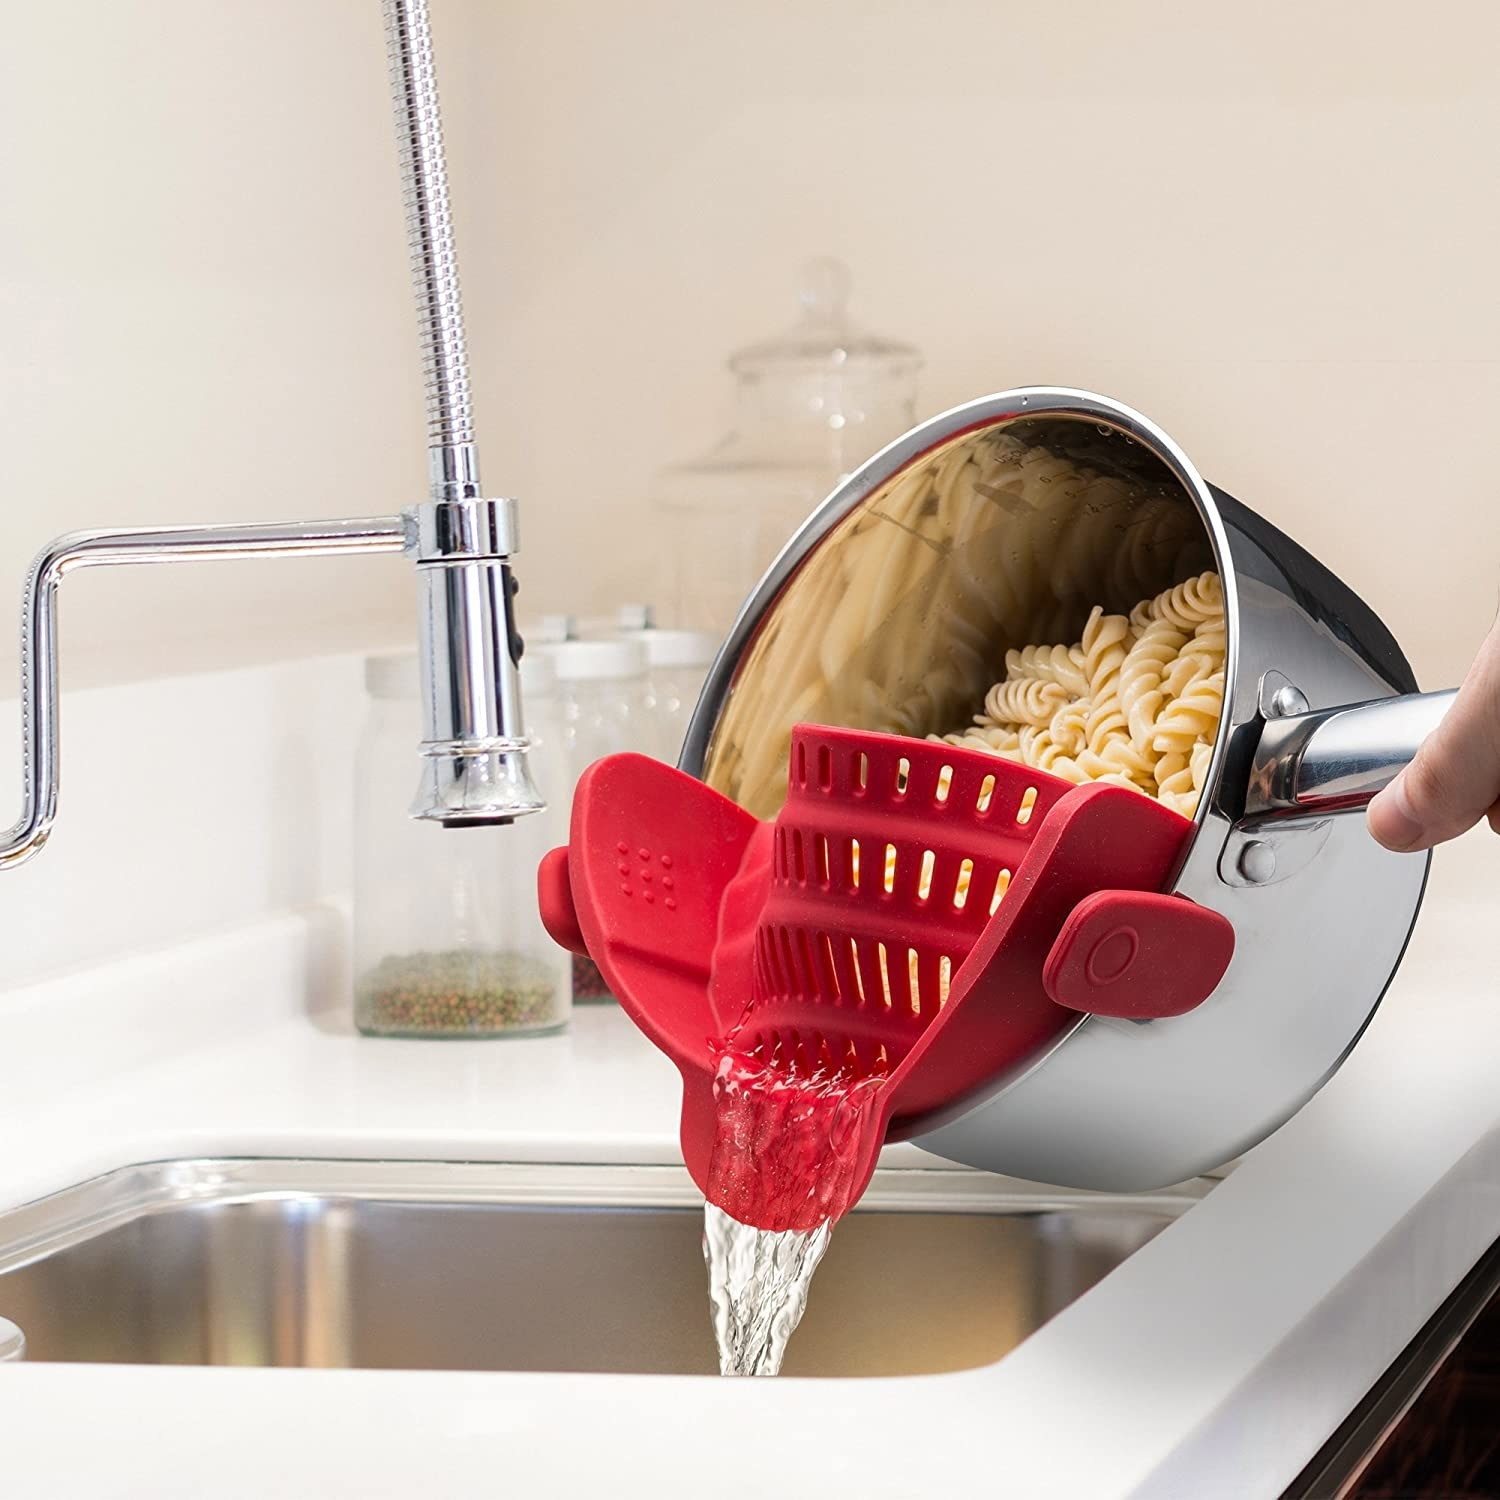 A person using the clip-on strainer to strain a pot of pasta in their sink